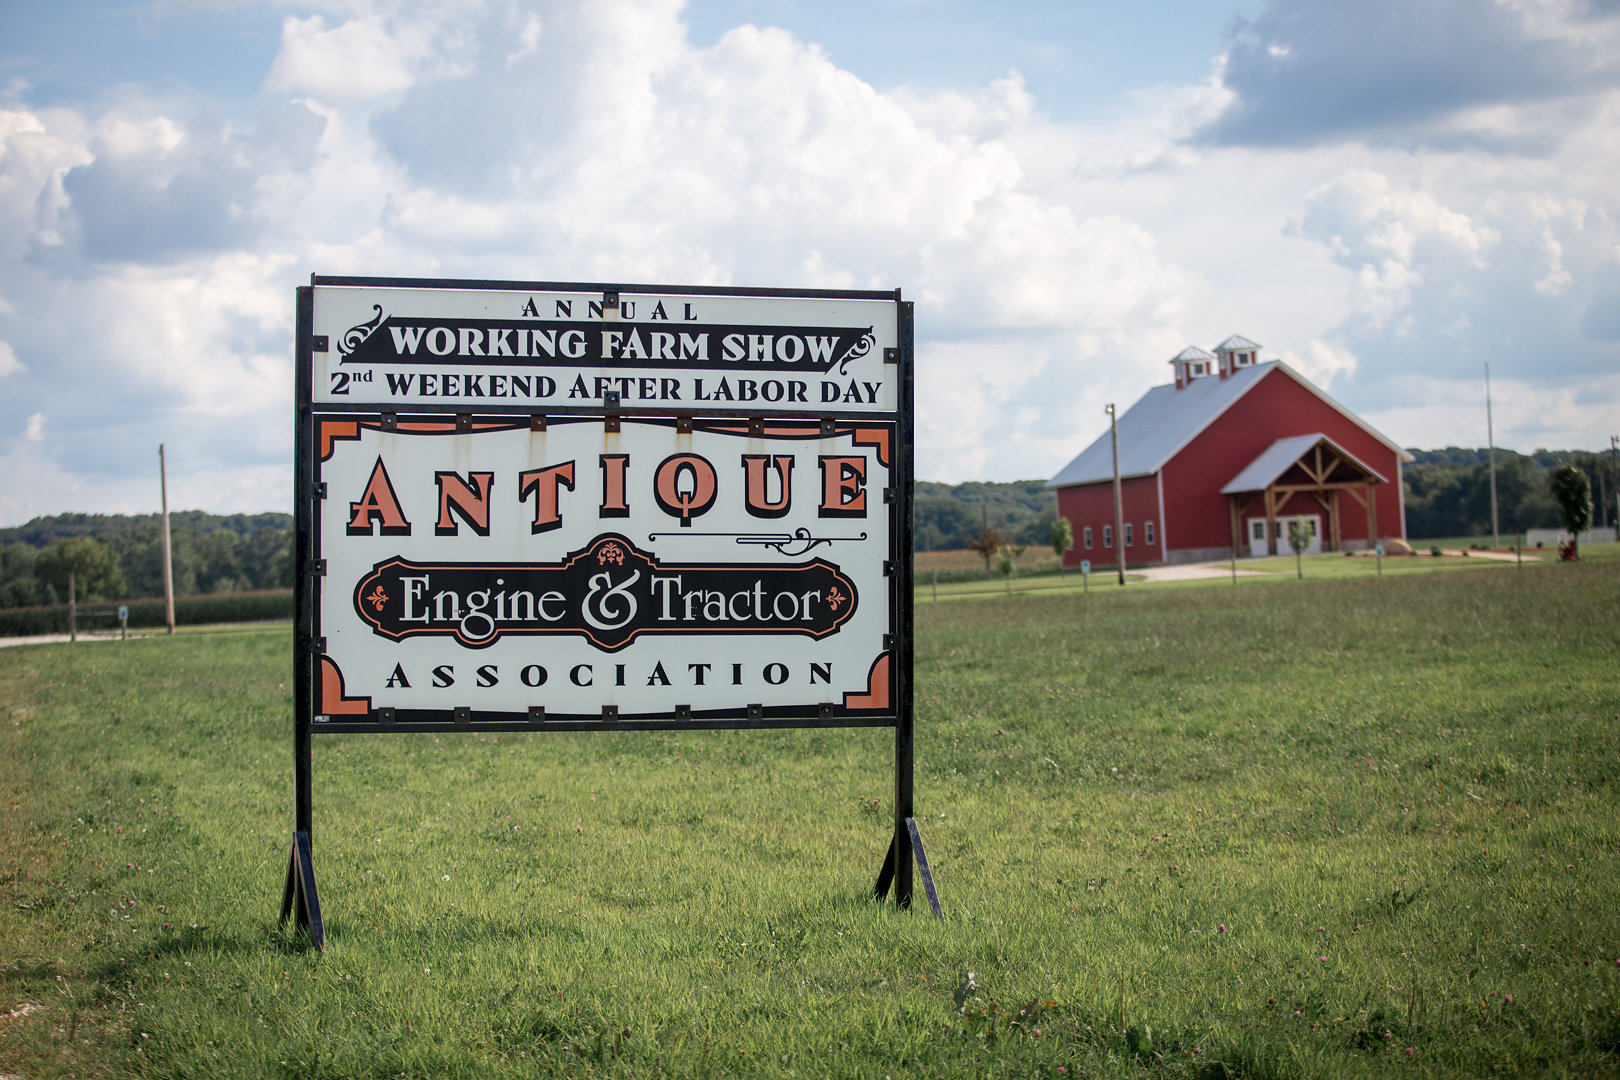 The Geneseo Antique Tractor and Engine Association was first created in 1970, and hold an annual tractor show to to promote the collection of historical farm equipment.